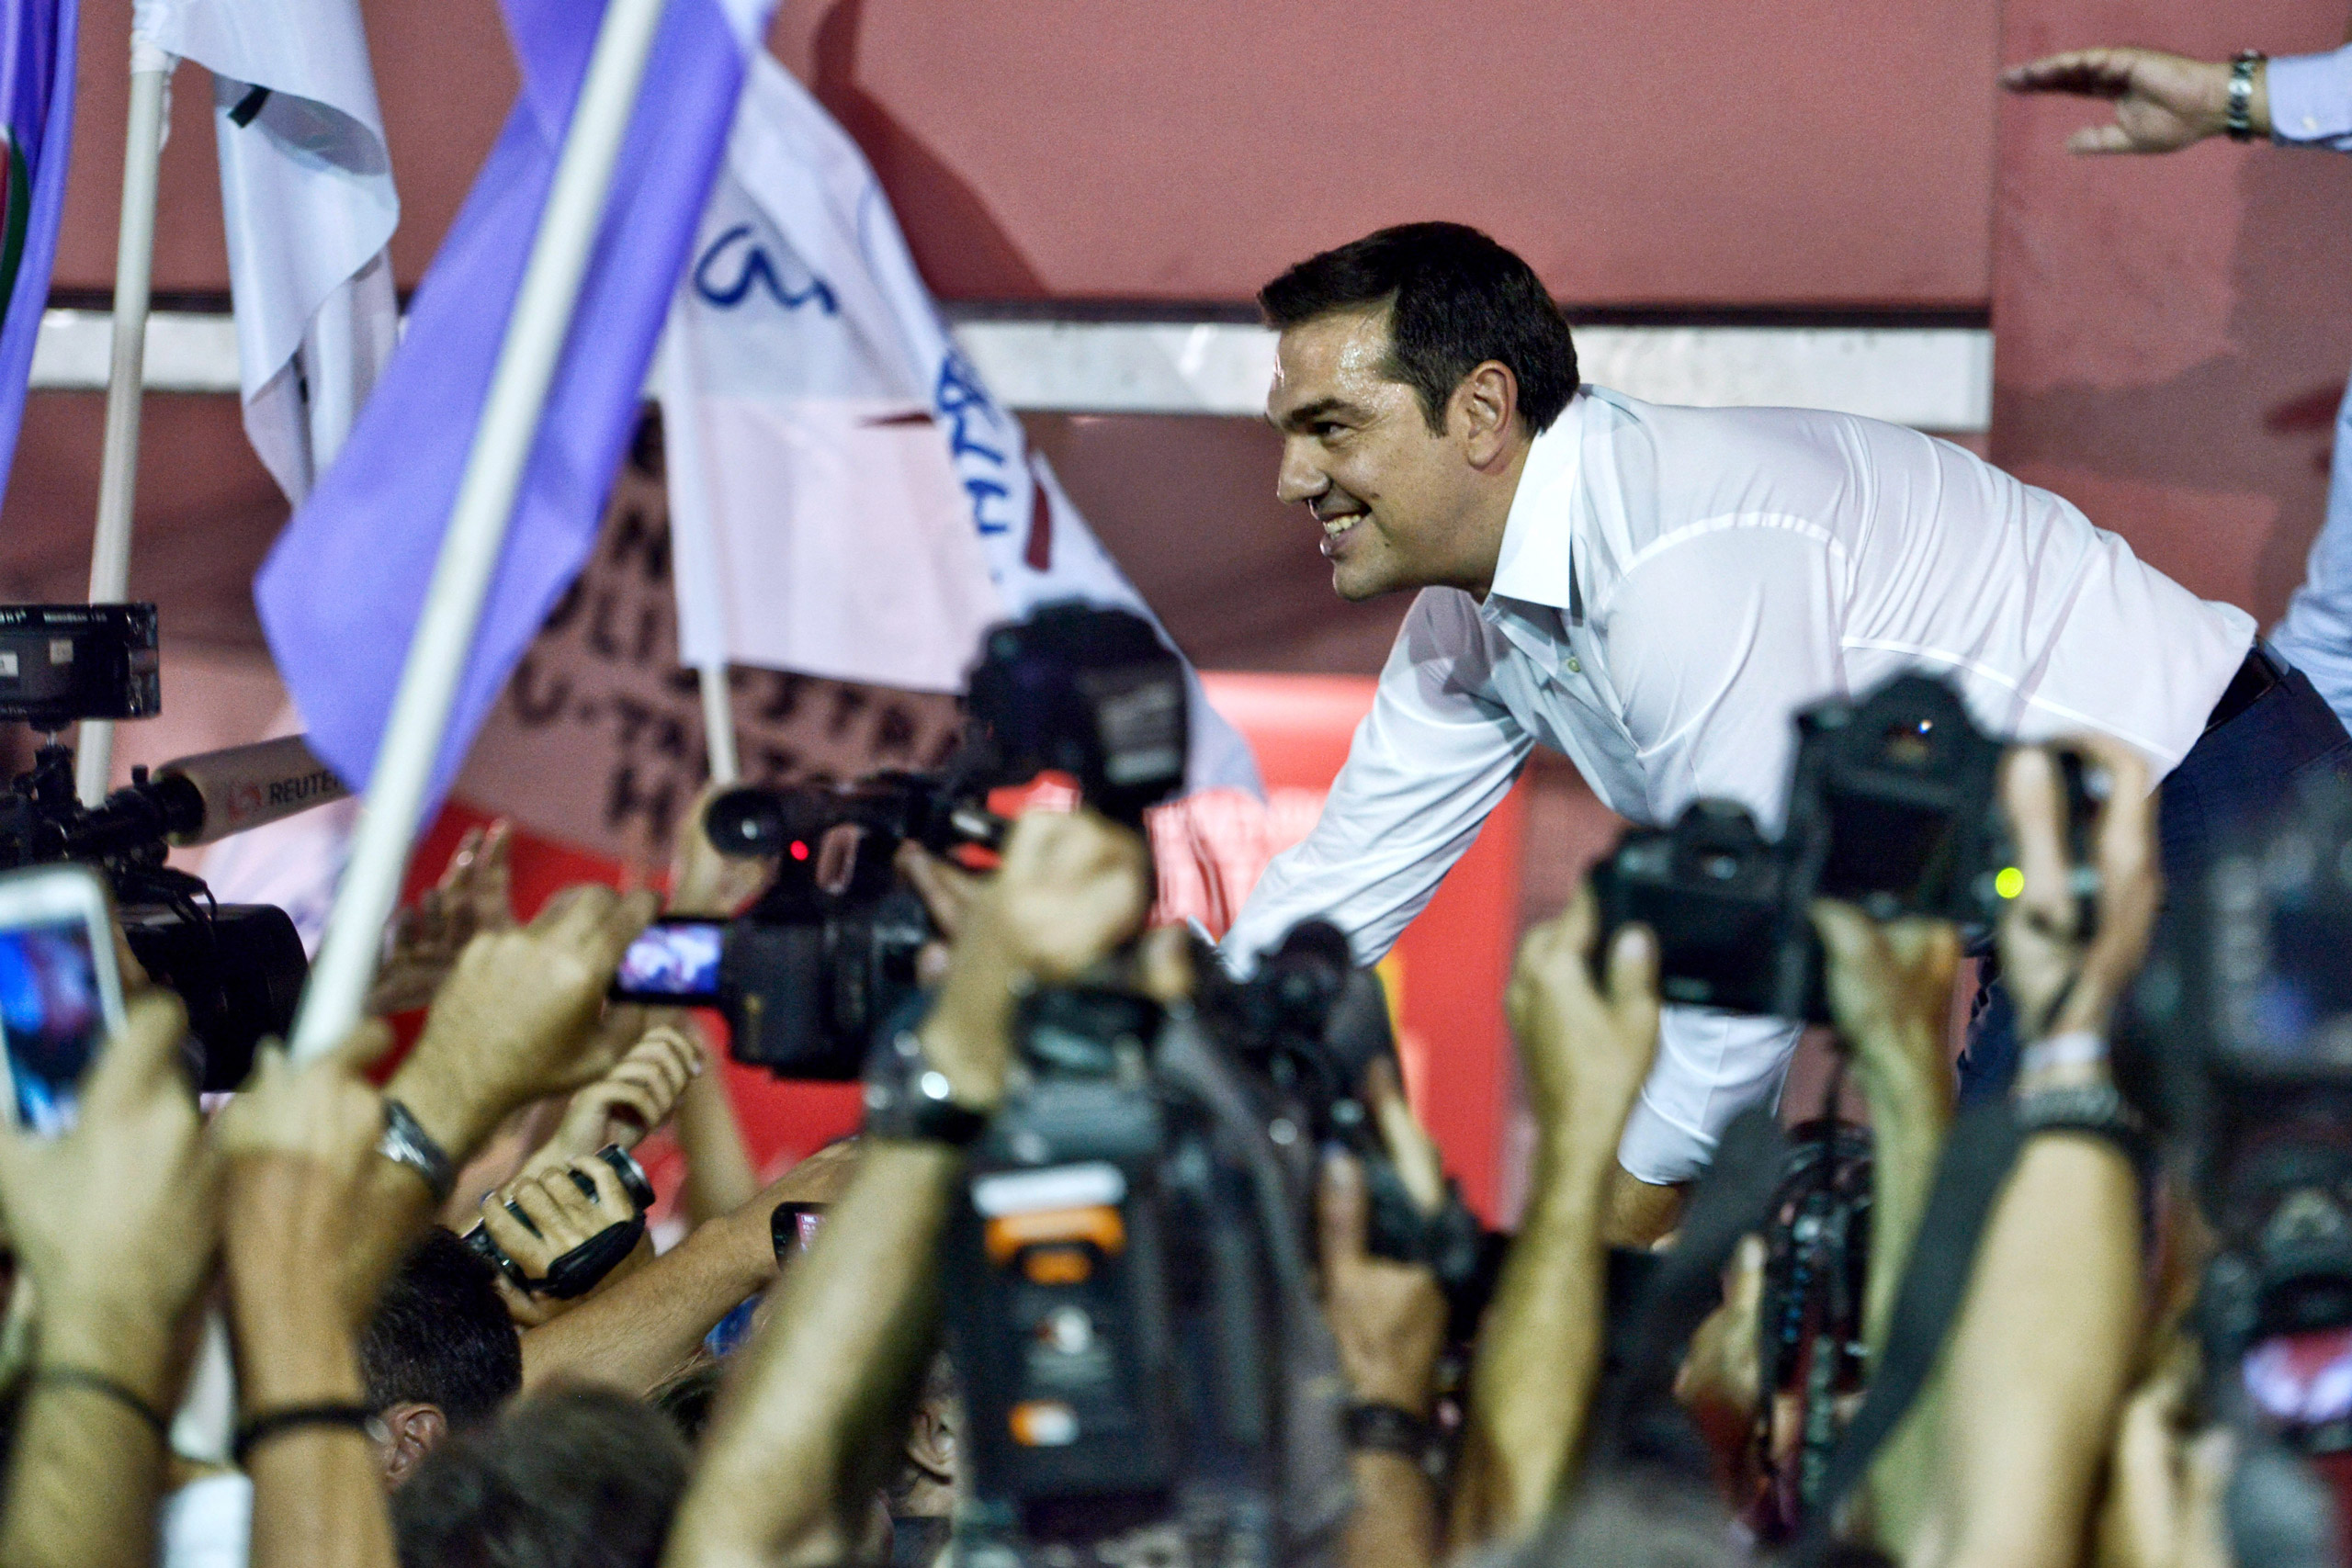 Former Greek prime minister and leader of leftist Syriza party Alexis Tsipras address supporters after winning the general election in Athens on Sept. 20, 2015.